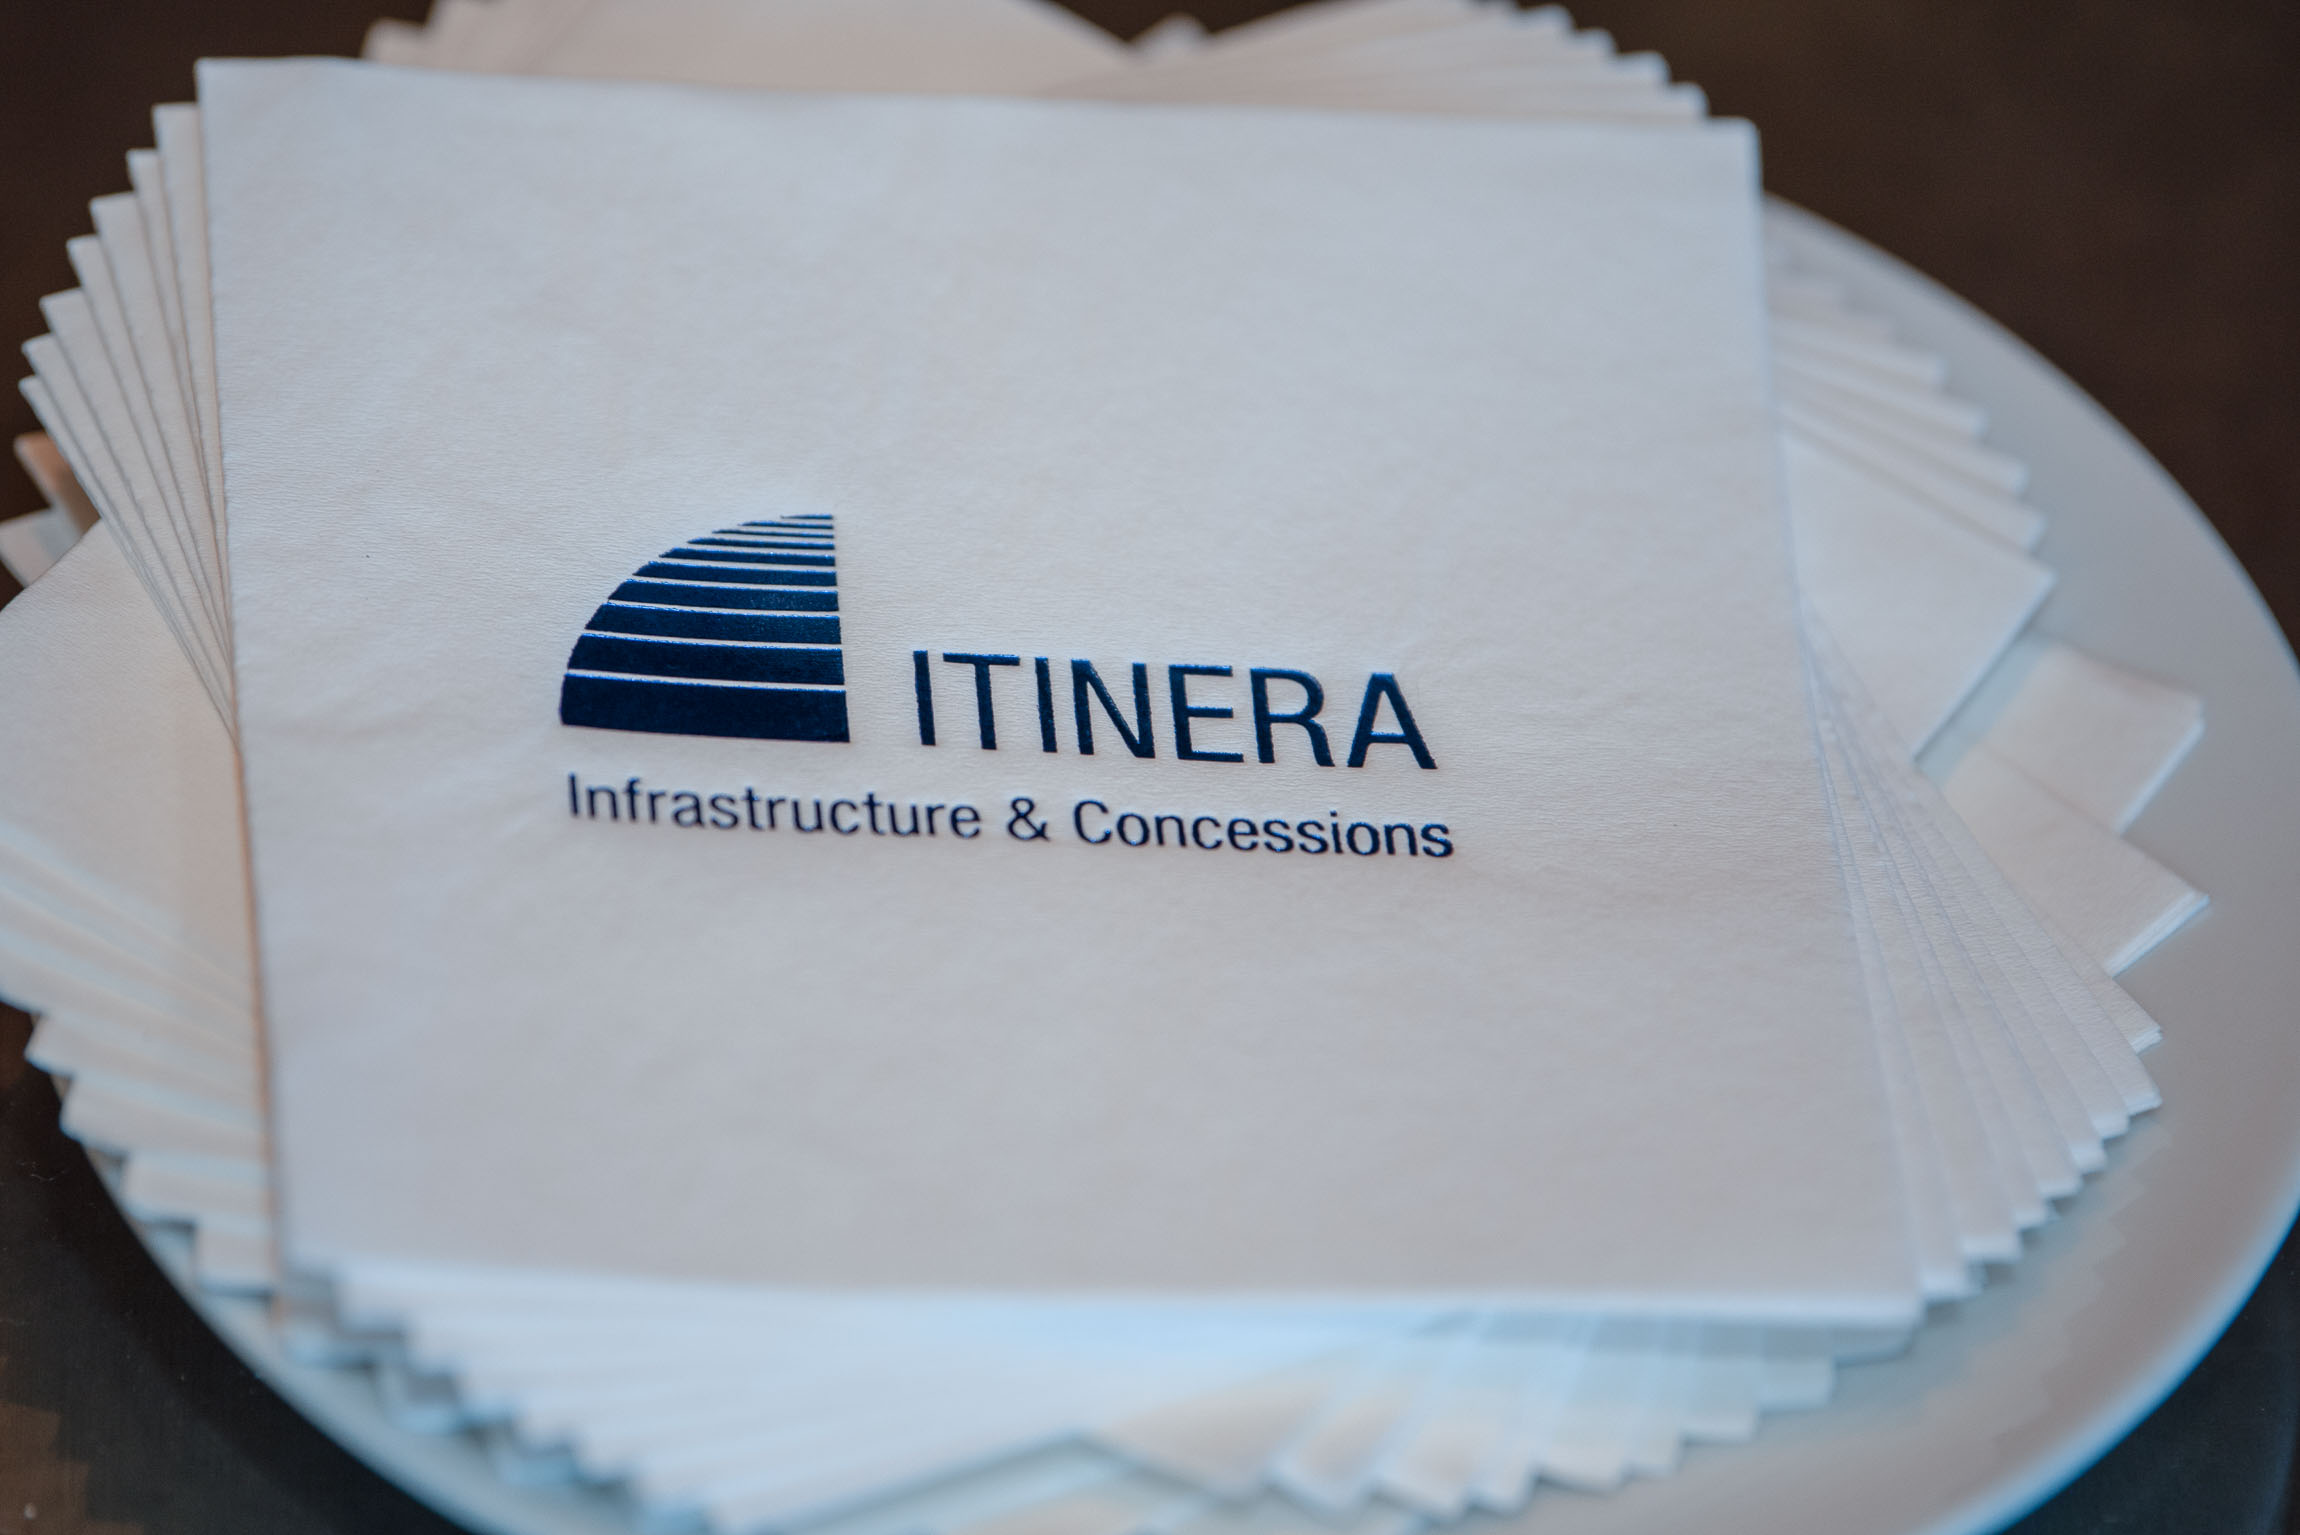 2019-05-15 Itinera Launch 001.jpg